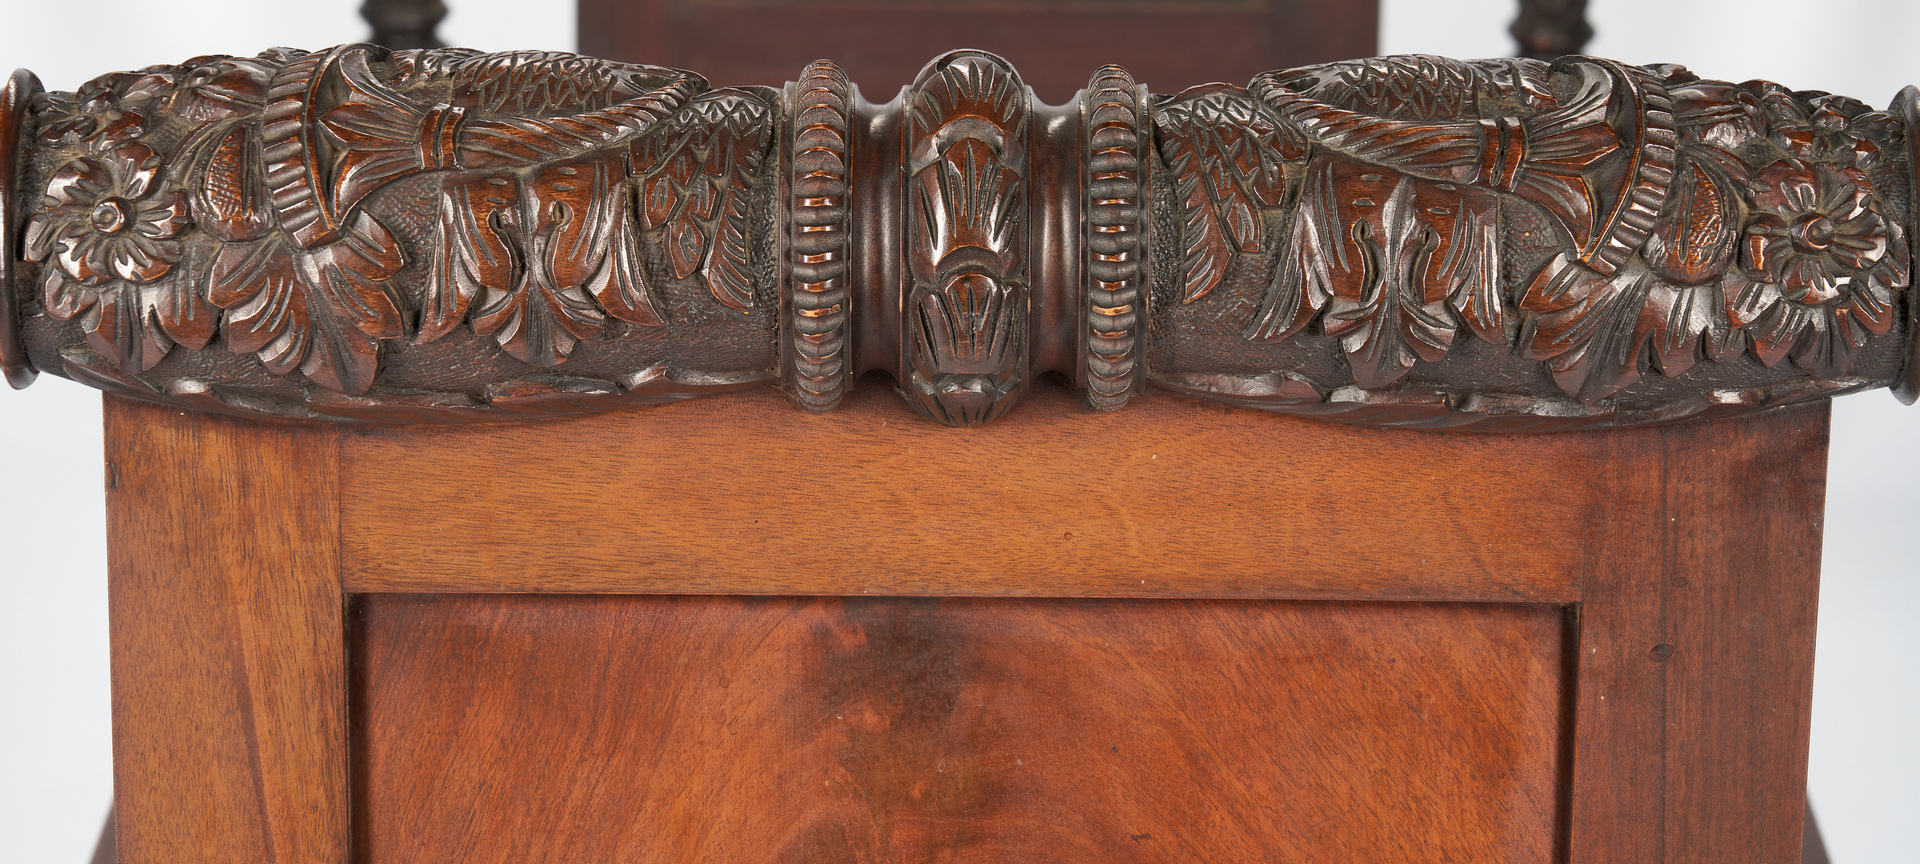 Lot 412: Classical Revival Carved Daybed